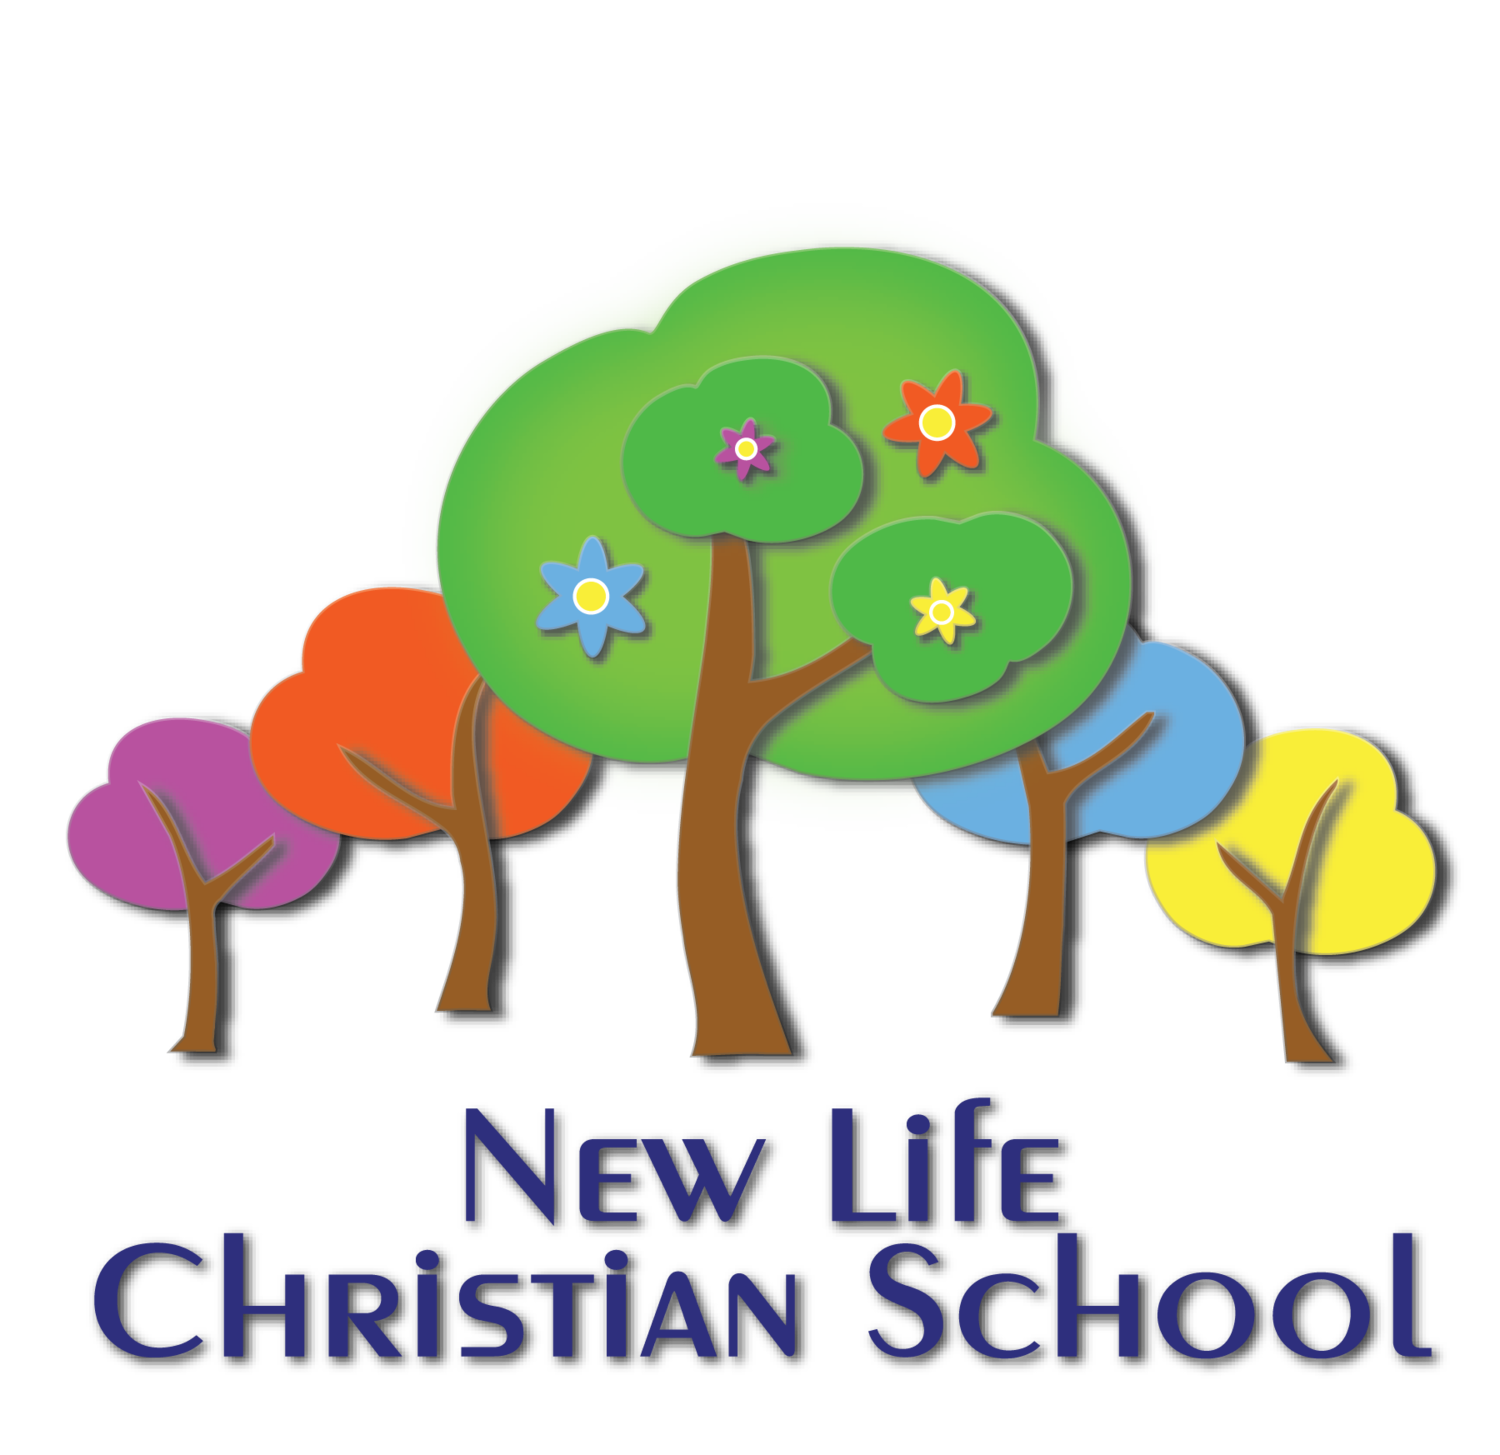 Schedule clipart school fee. Facilities new life christian